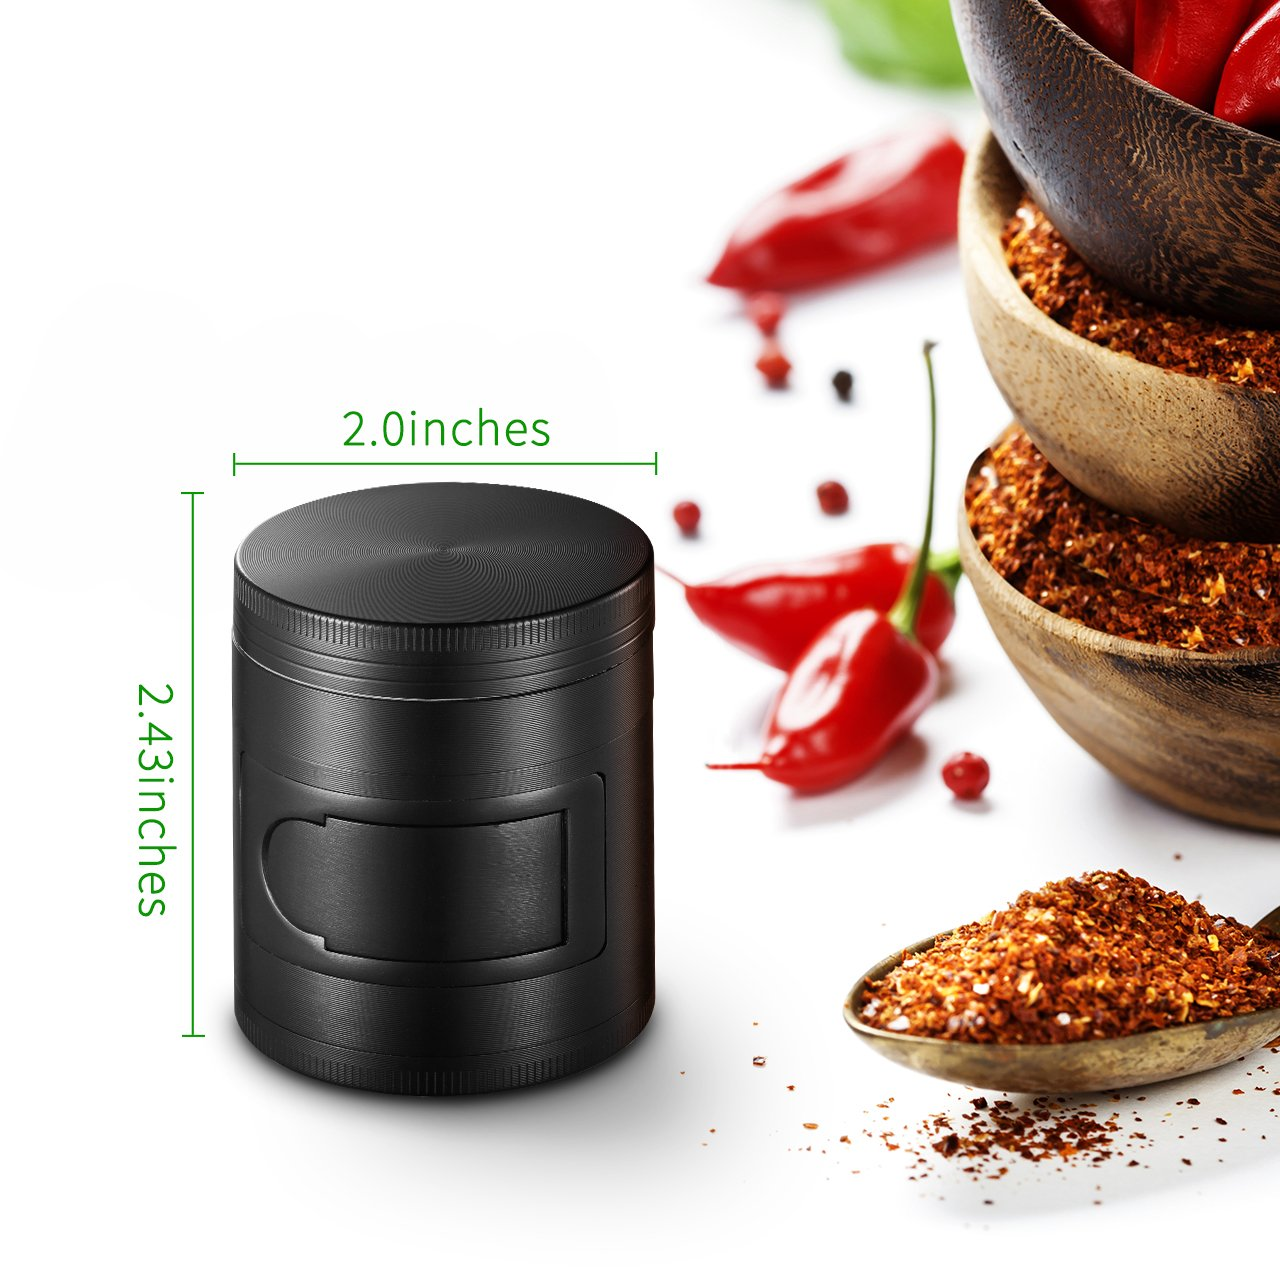 OMorc Herb and Spice Kitchen Grinder with Pollen Catcher 4-Piece 2 Heavy Duty Anodized Aluminum with Scrapper and Easy Access Window